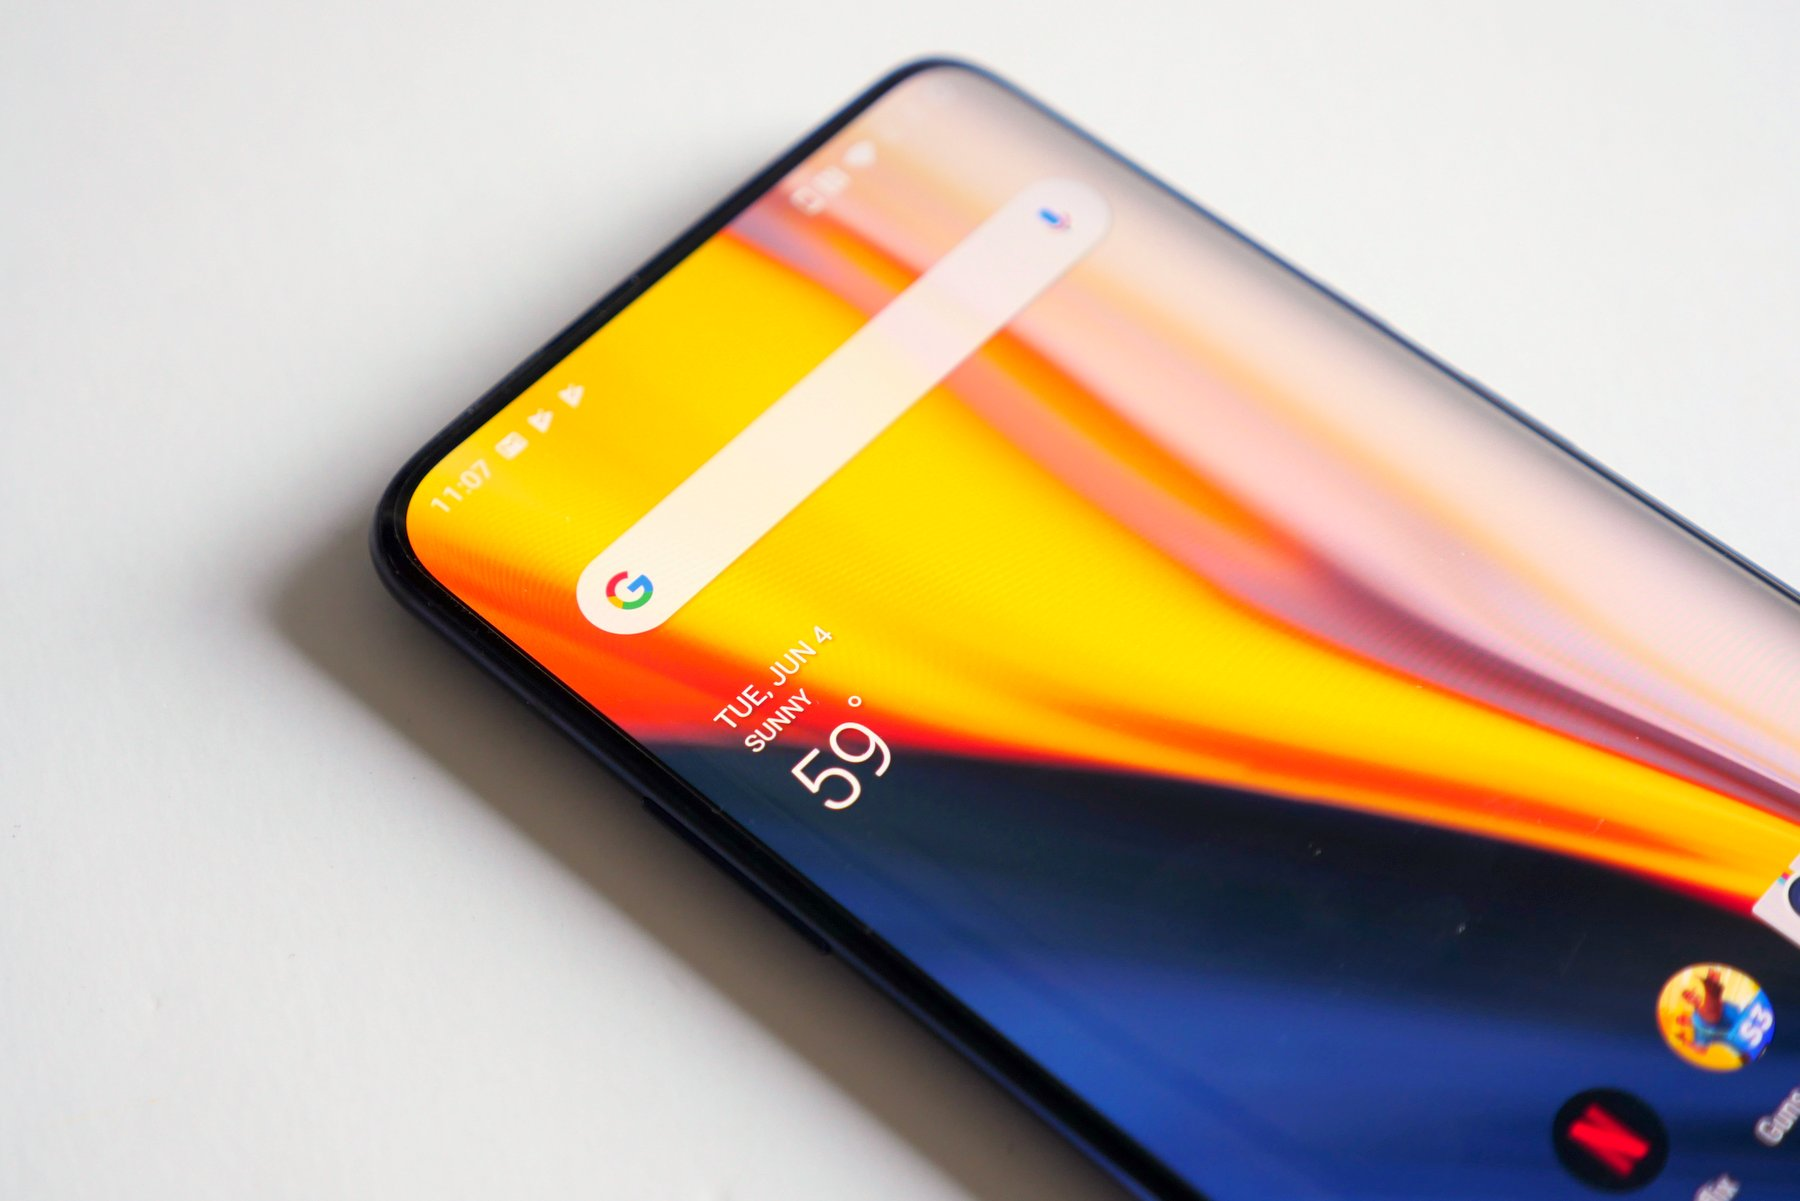 The OnePlus 7 Pro's gorgeous display is its best and worst